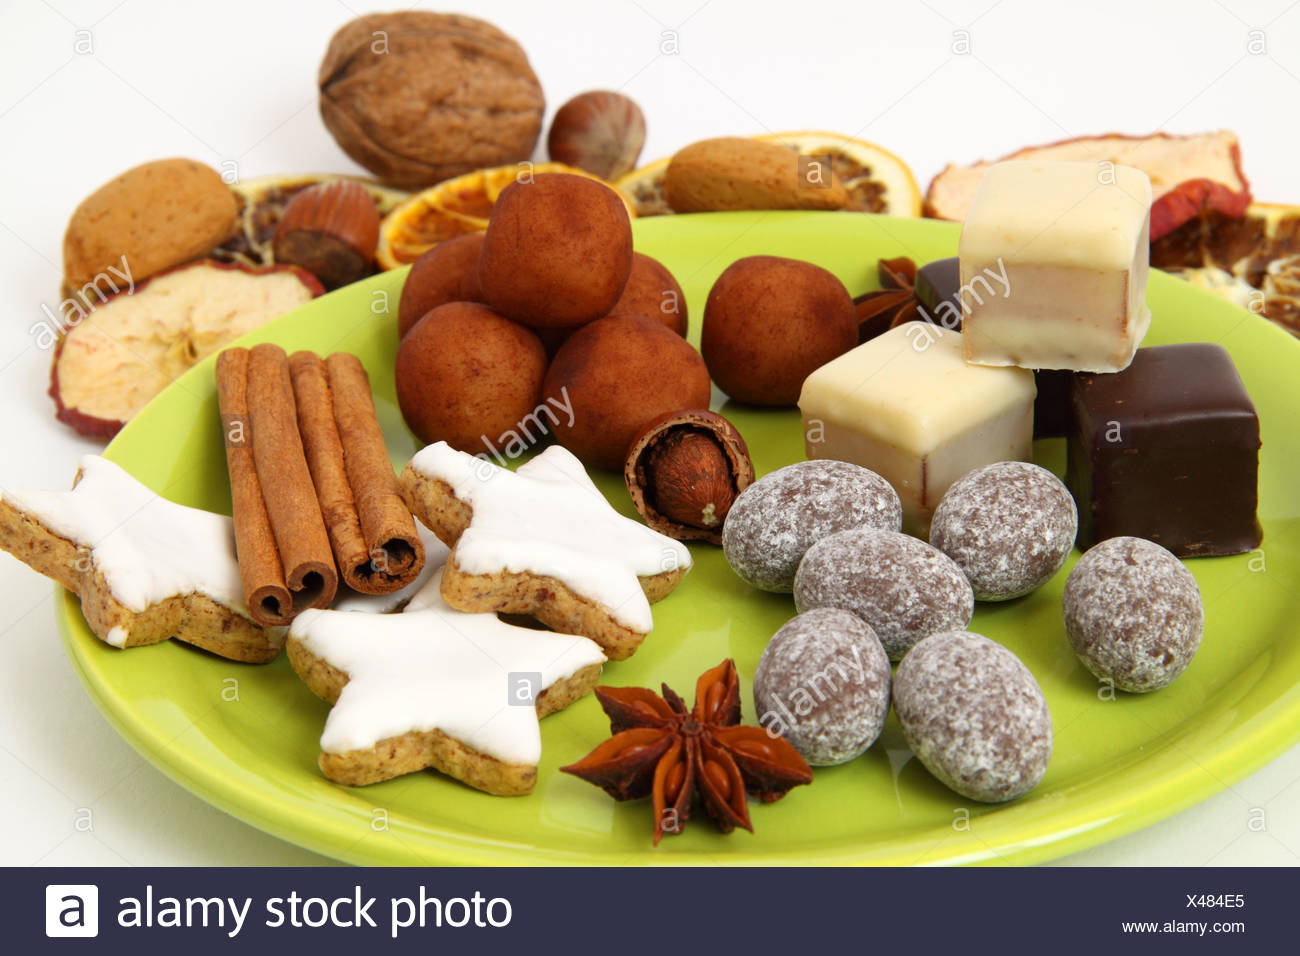 Filberts Christmas Christmas Cookies Marzipan Sweets Pastry Nuts